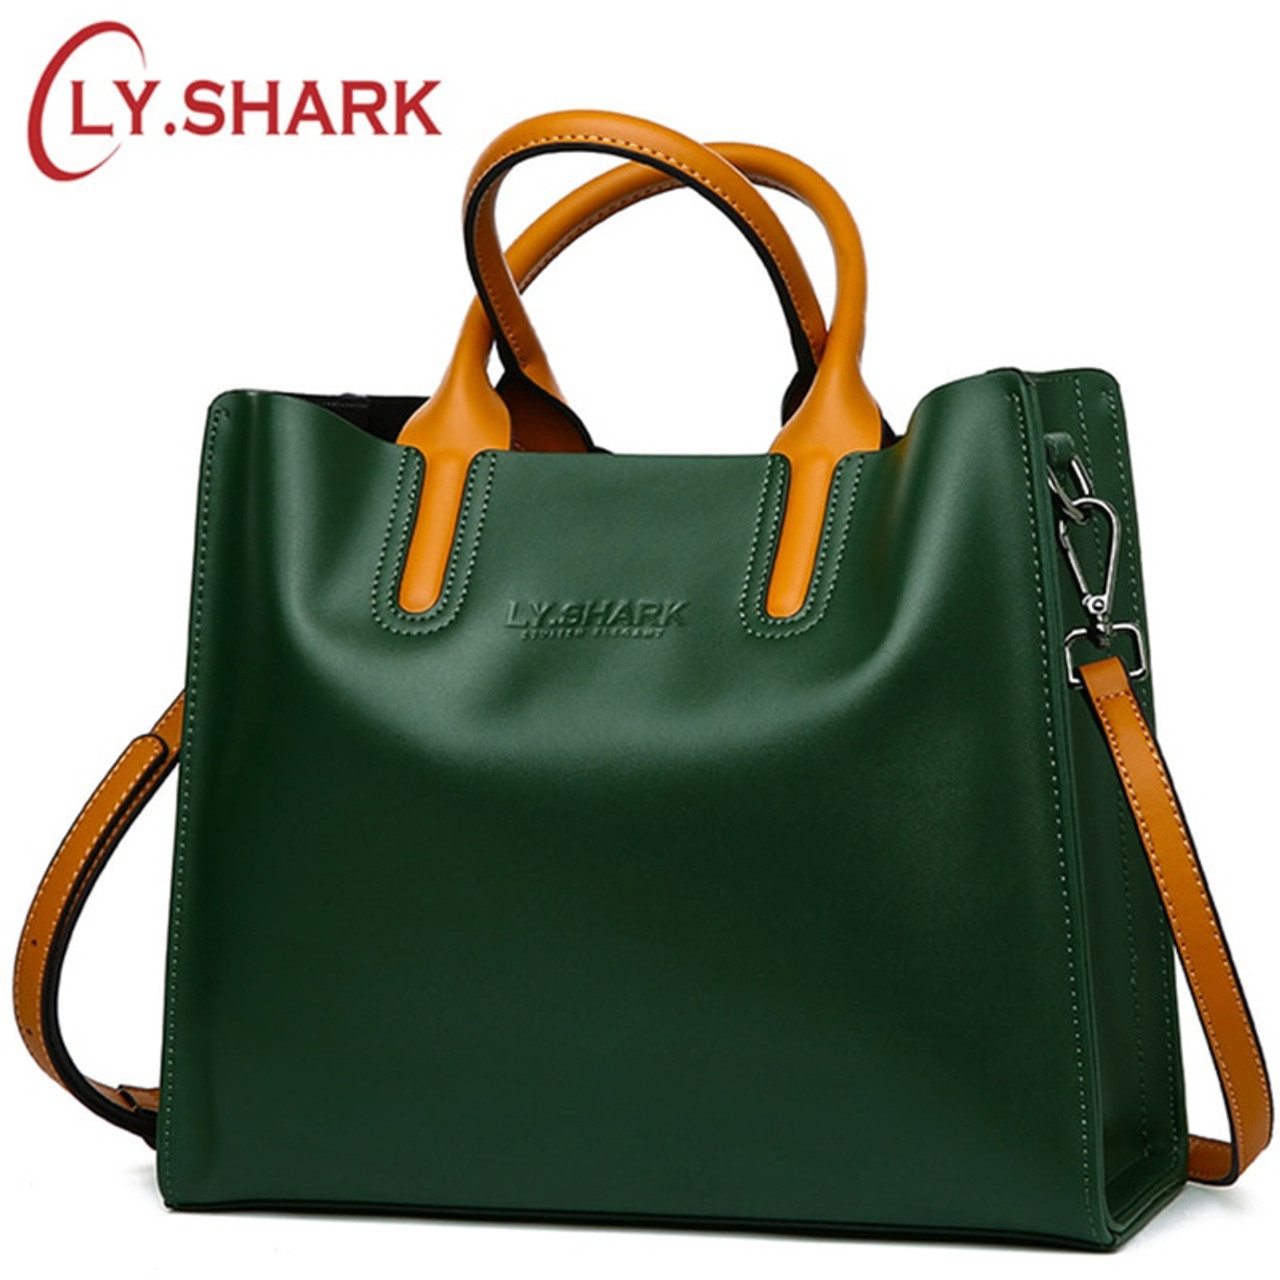 e8ab873e3cc0 SHARK Big Messenger Bag Women Shoulder Bag Female Bag Ladies Genuine  Leather Bags For ...